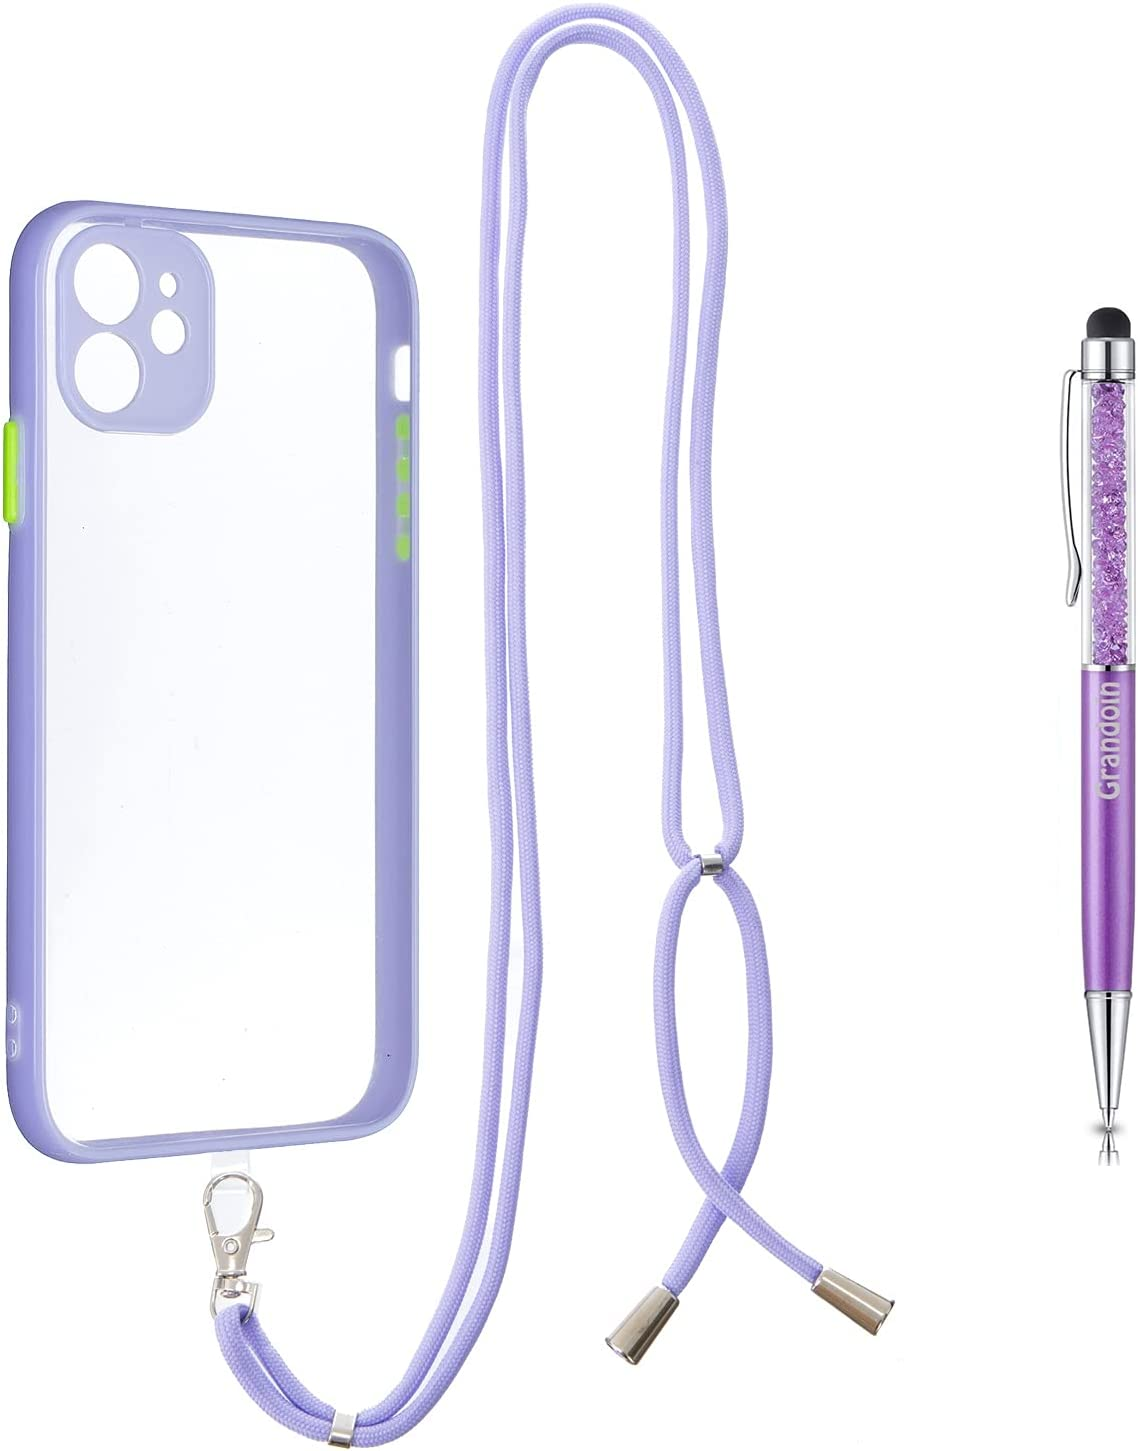 Grandoin Crossbody Case for iPhone 11 (6.1 Inch), Lanyard Case Necklace Mobile Phone Cover with Adjustable Cord Strap, Clear Transparent TPU Cover Holder with Neck Cord Lanyard Strap (Purple)